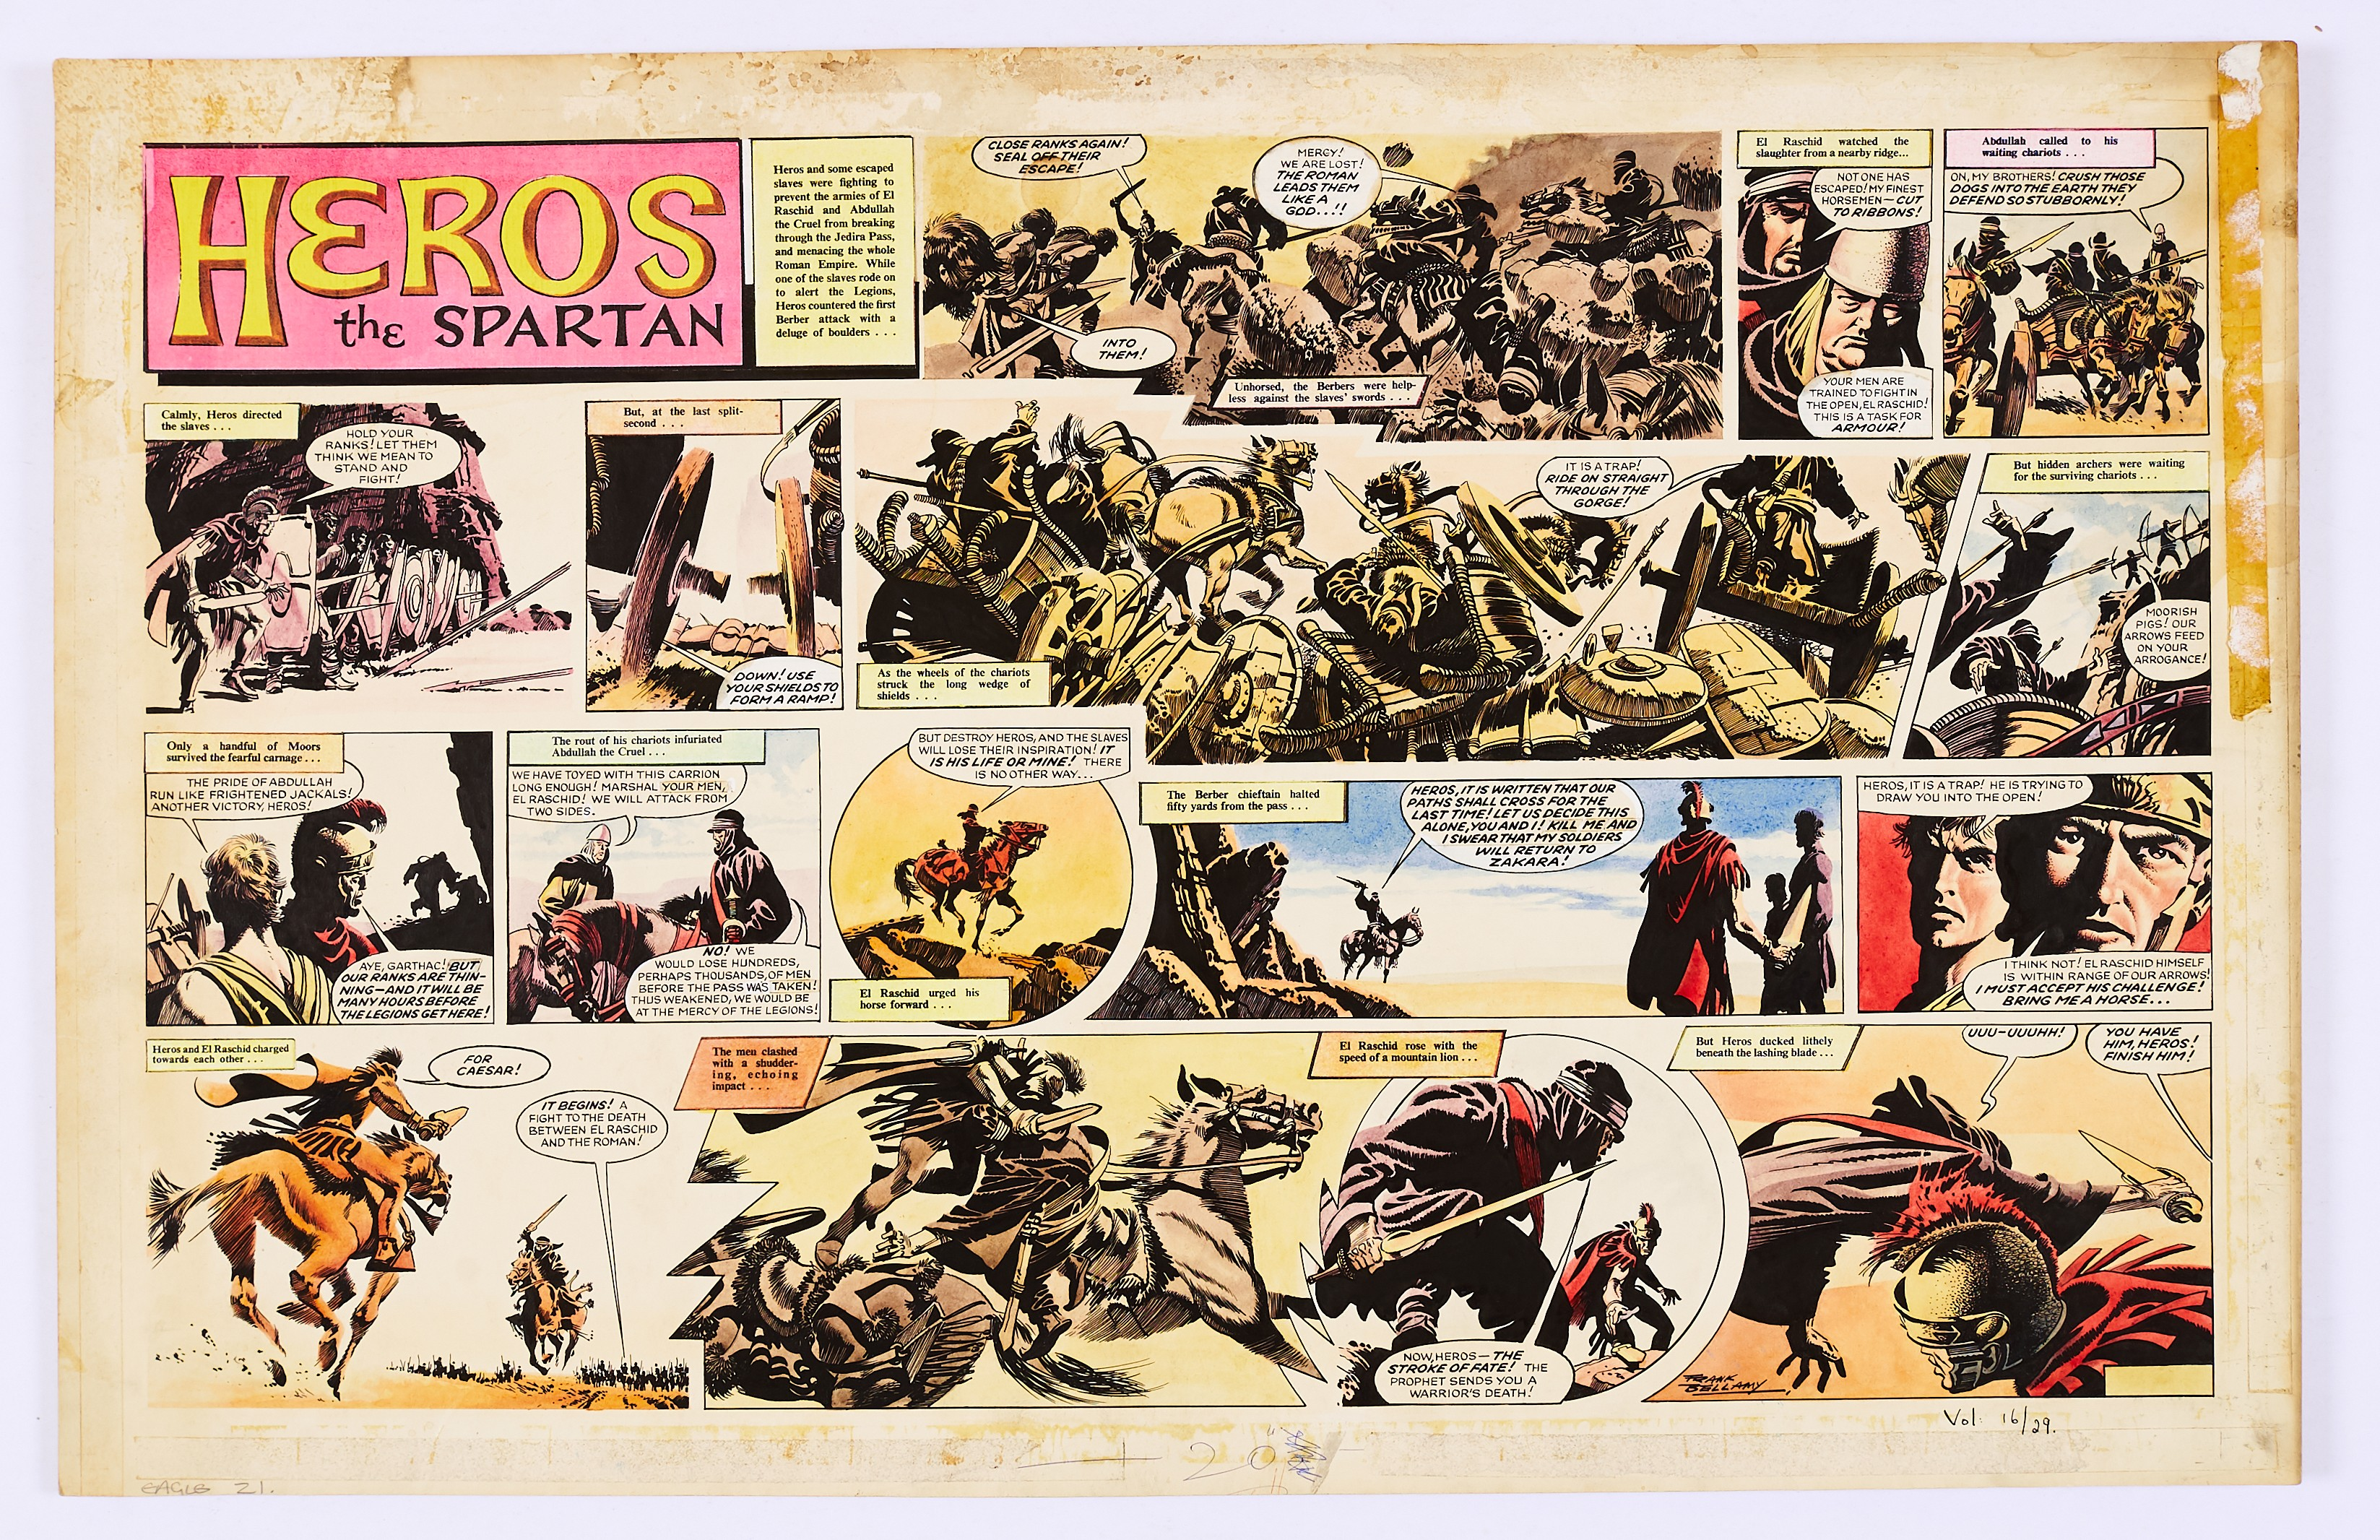 Heros The Spartan double-page original artwork (1965) painted and signed by Frank Bellamy from The